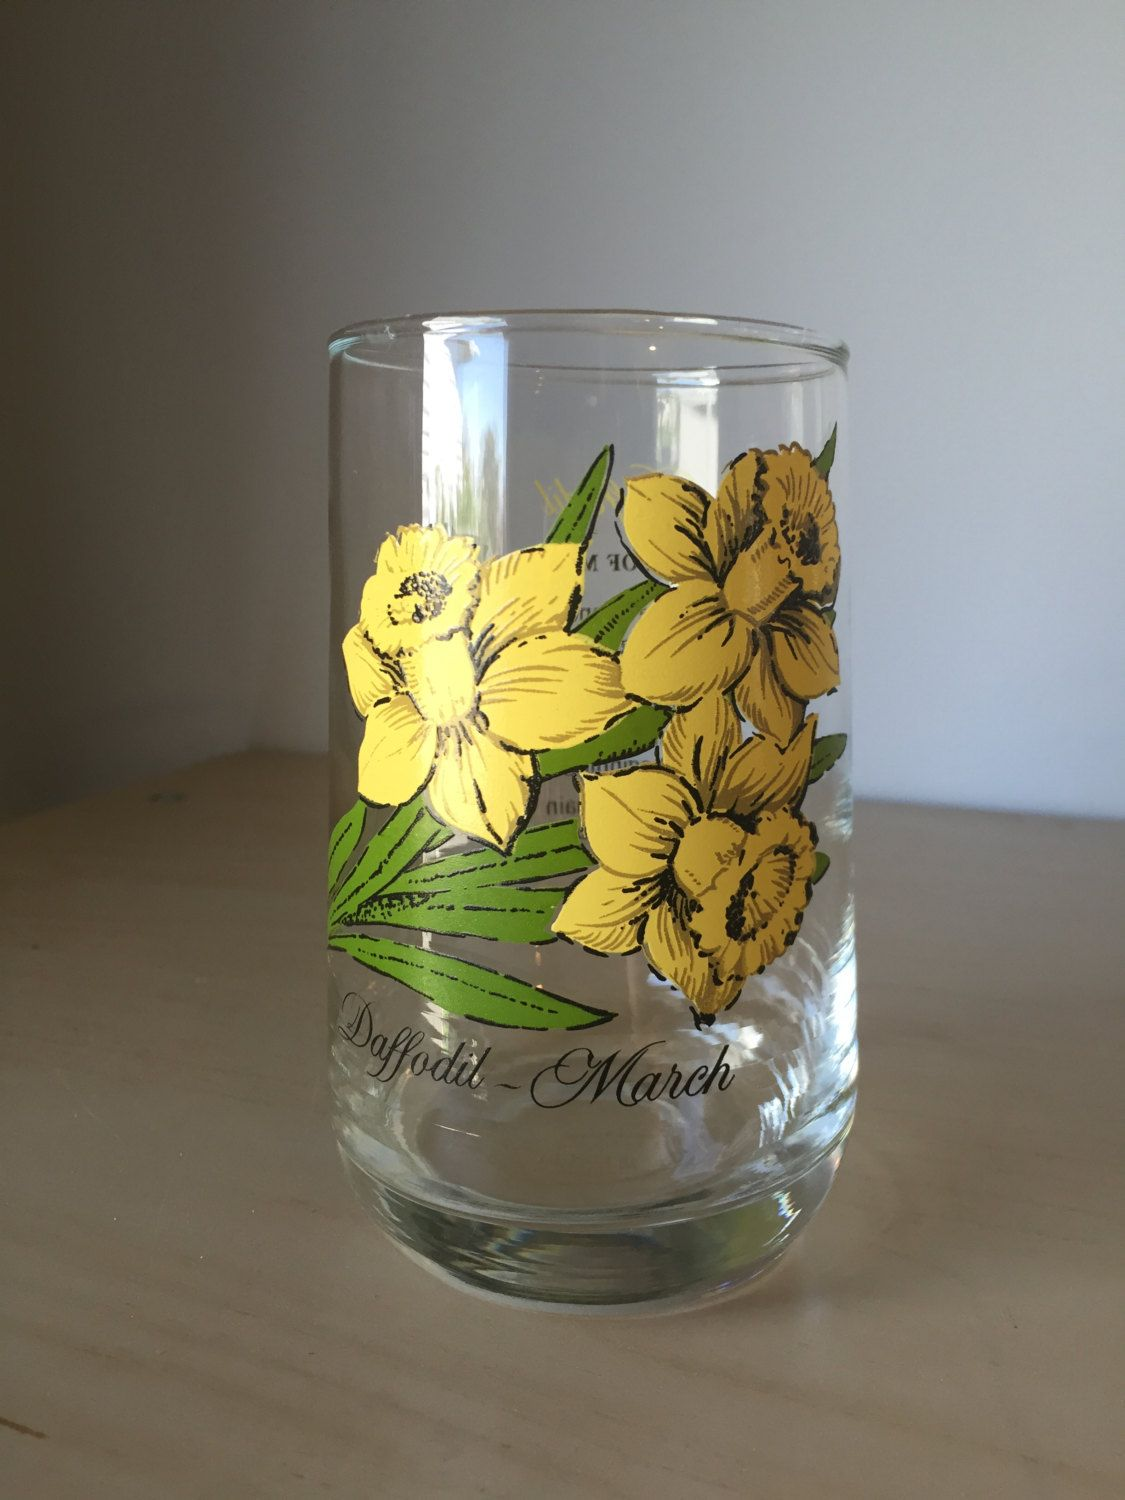 Vintage flower of the month series drinking glass march daffodil vintage flower of the month series drinking glass march daffodil yellow floral glass cup izmirmasajfo